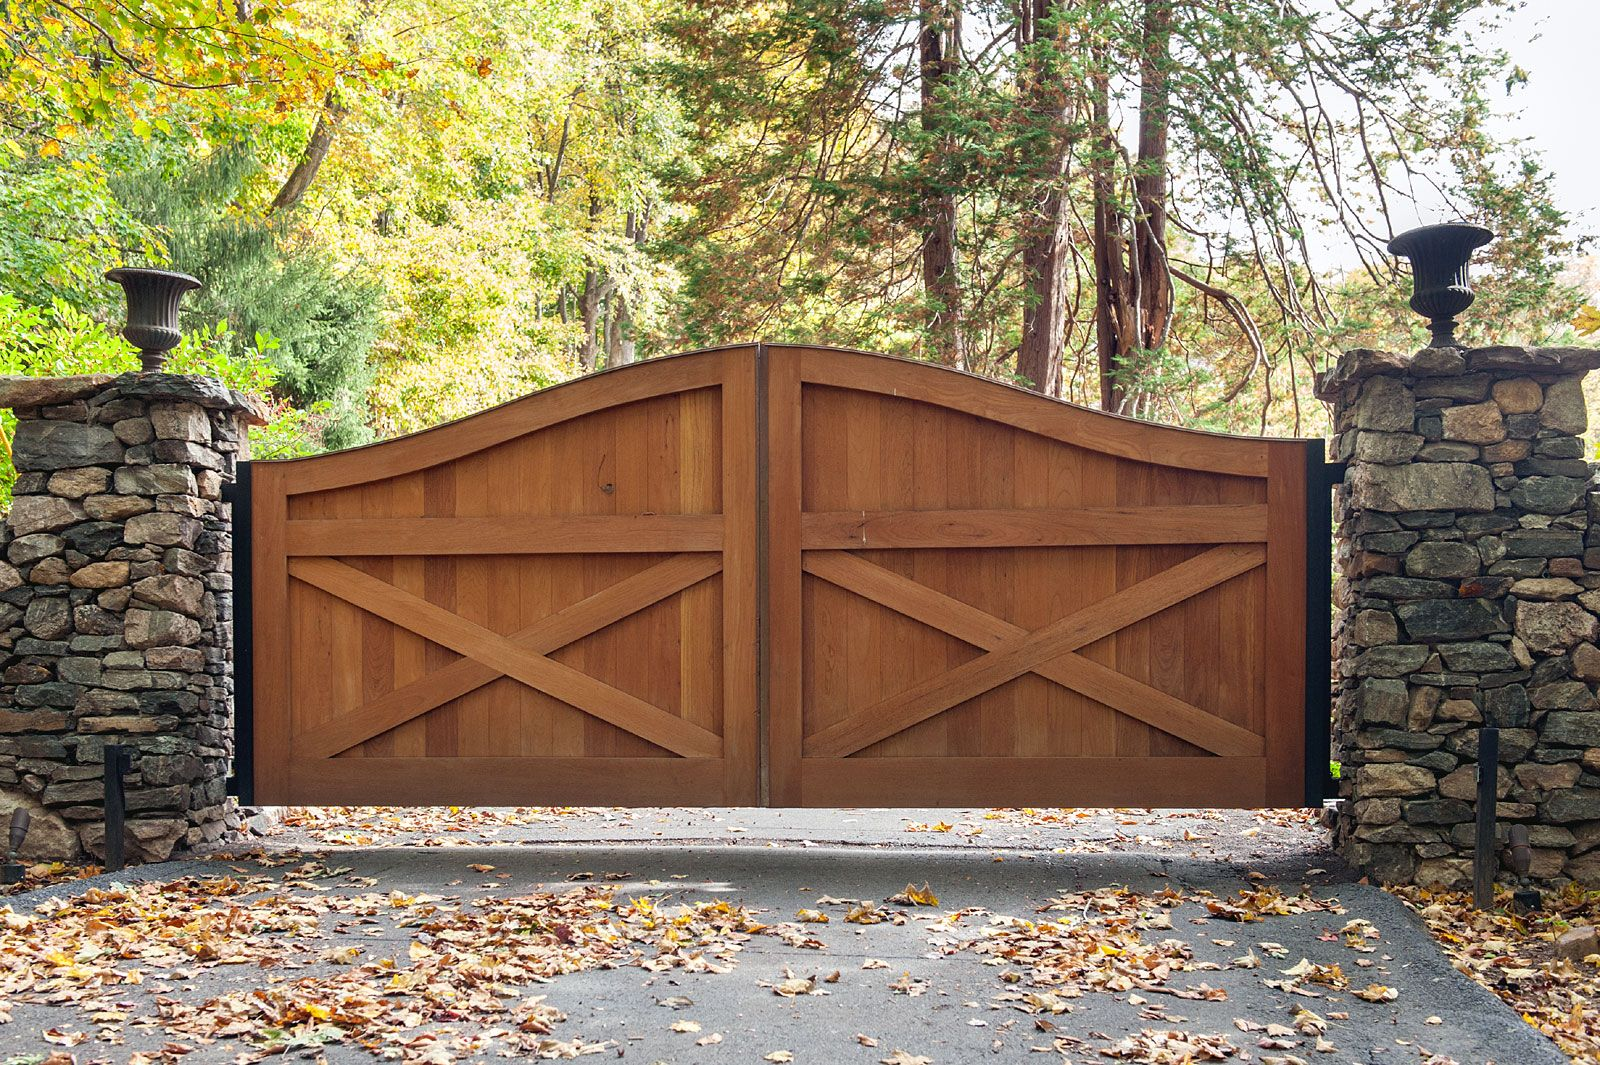 Gorgeous Cedar Wood Farmhouse Design Driveway Gate With Custom Stone